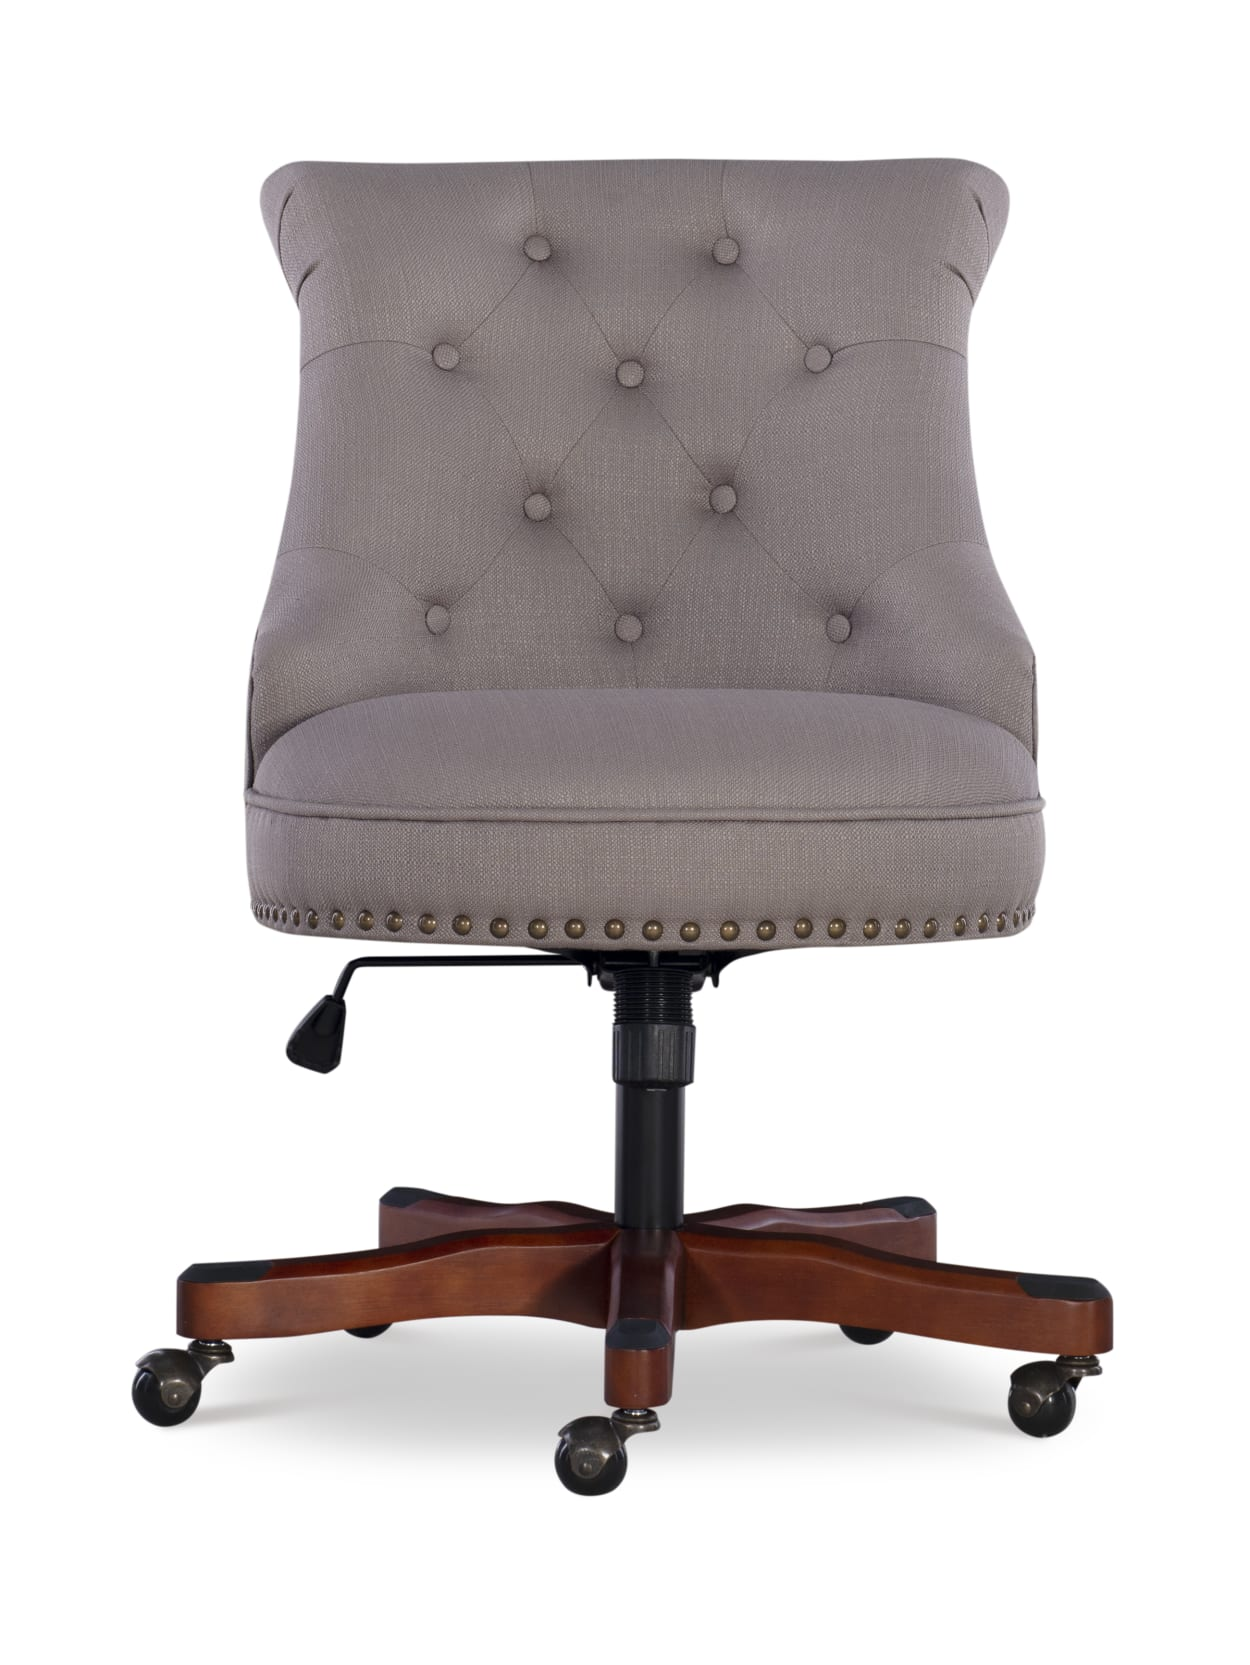 Linon Home Decor Products Dallas Fabric Mid Back Home Office Chair Dolphin Graydark Walnut Office Depot